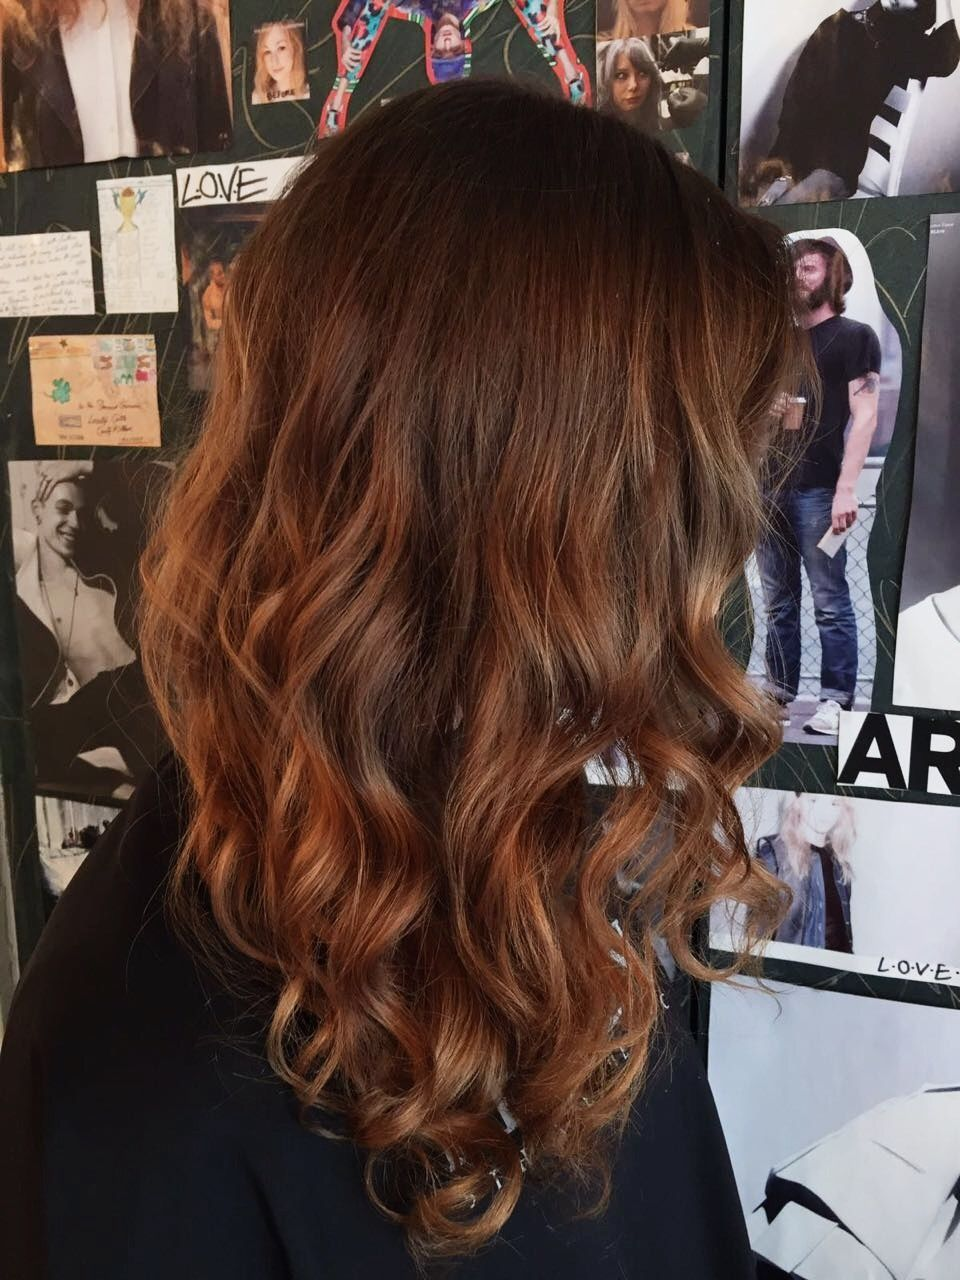 Long Brunette Curly Hair London Hairdresser For More Hairstyles And Our List Of Hair Services Visit Www Livet London Hair Salon Best Hair Salon Long Brunette